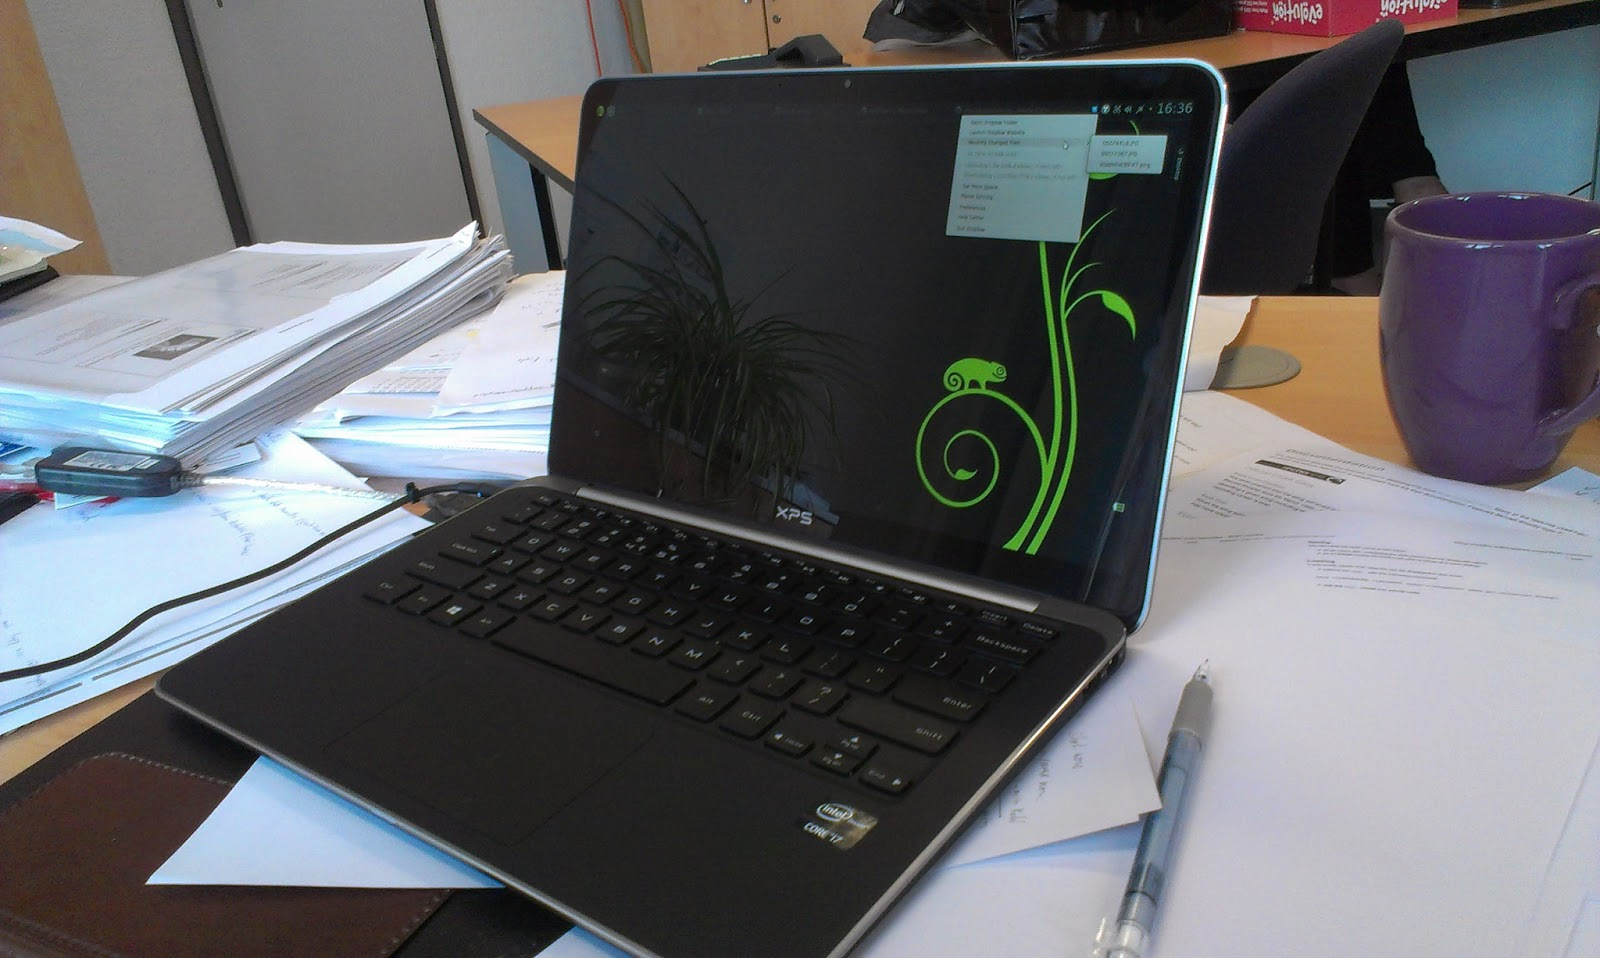 Dorien Herremans: Installing OpenSuse 12 3 on the new Dell